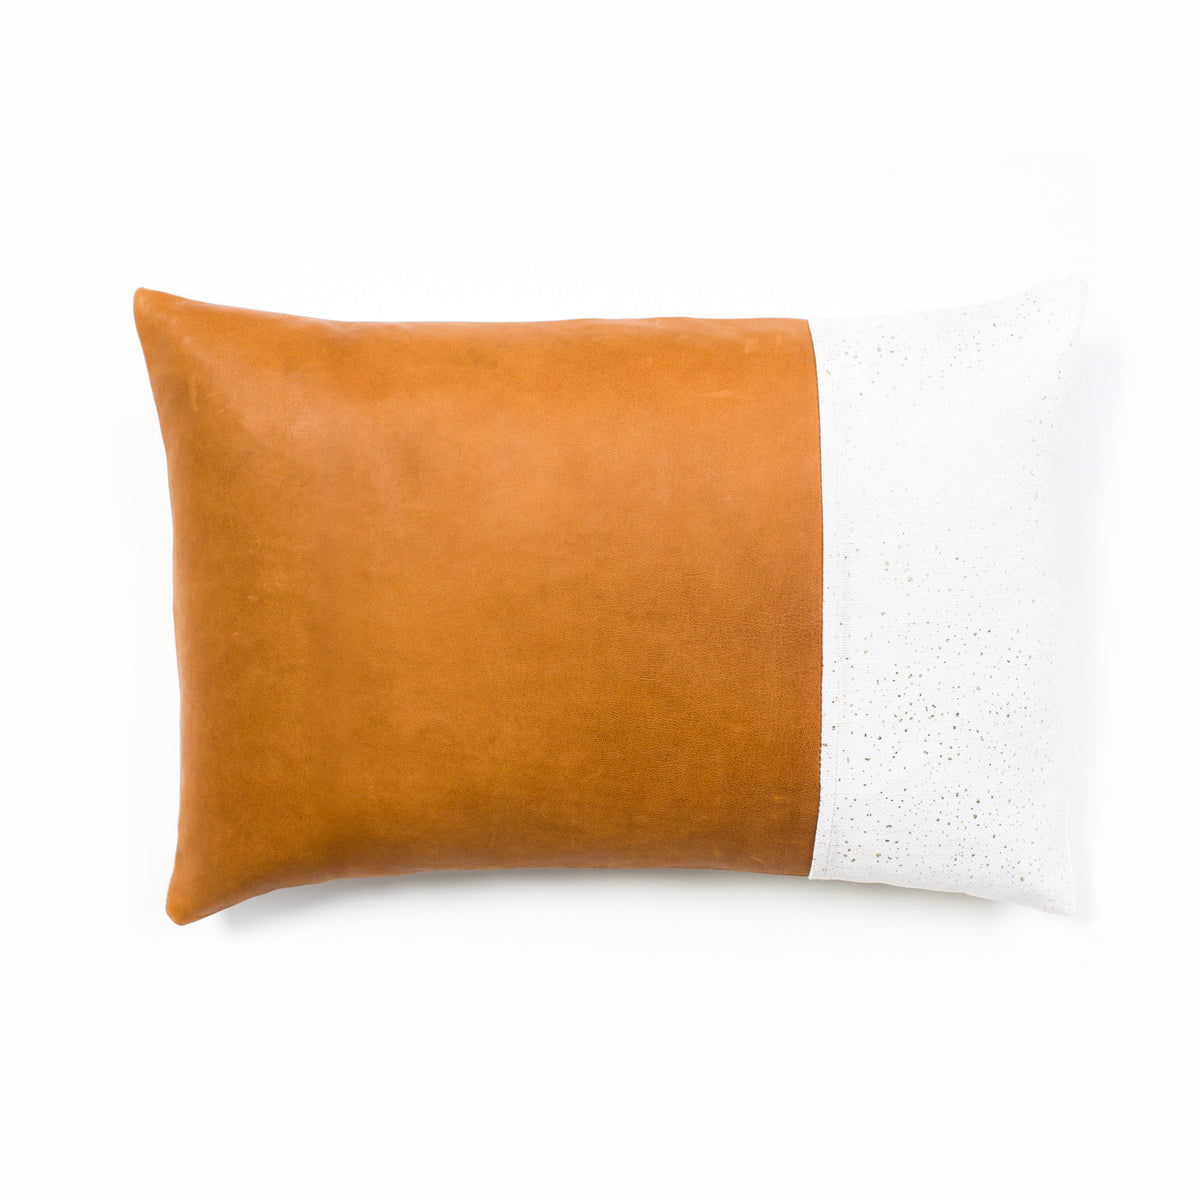 Fraser Leather & Linen Cushion Cover - Tan